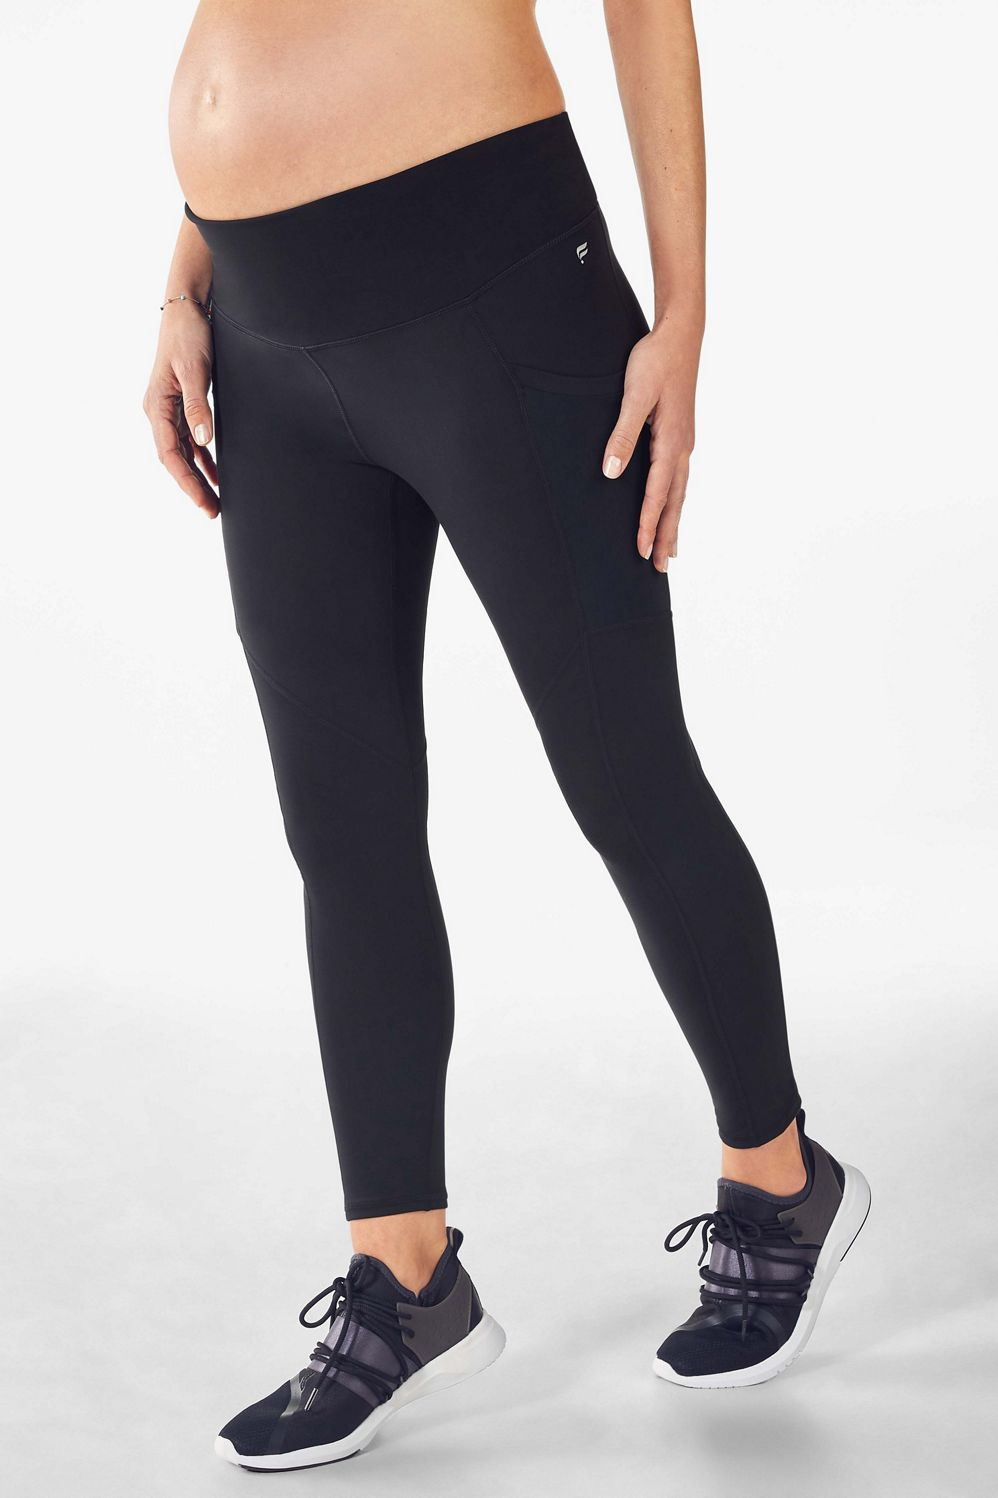 64a99ba095cb4 Maternity High-Waisted PureLuxe Pocket 7/8 - Fabletics